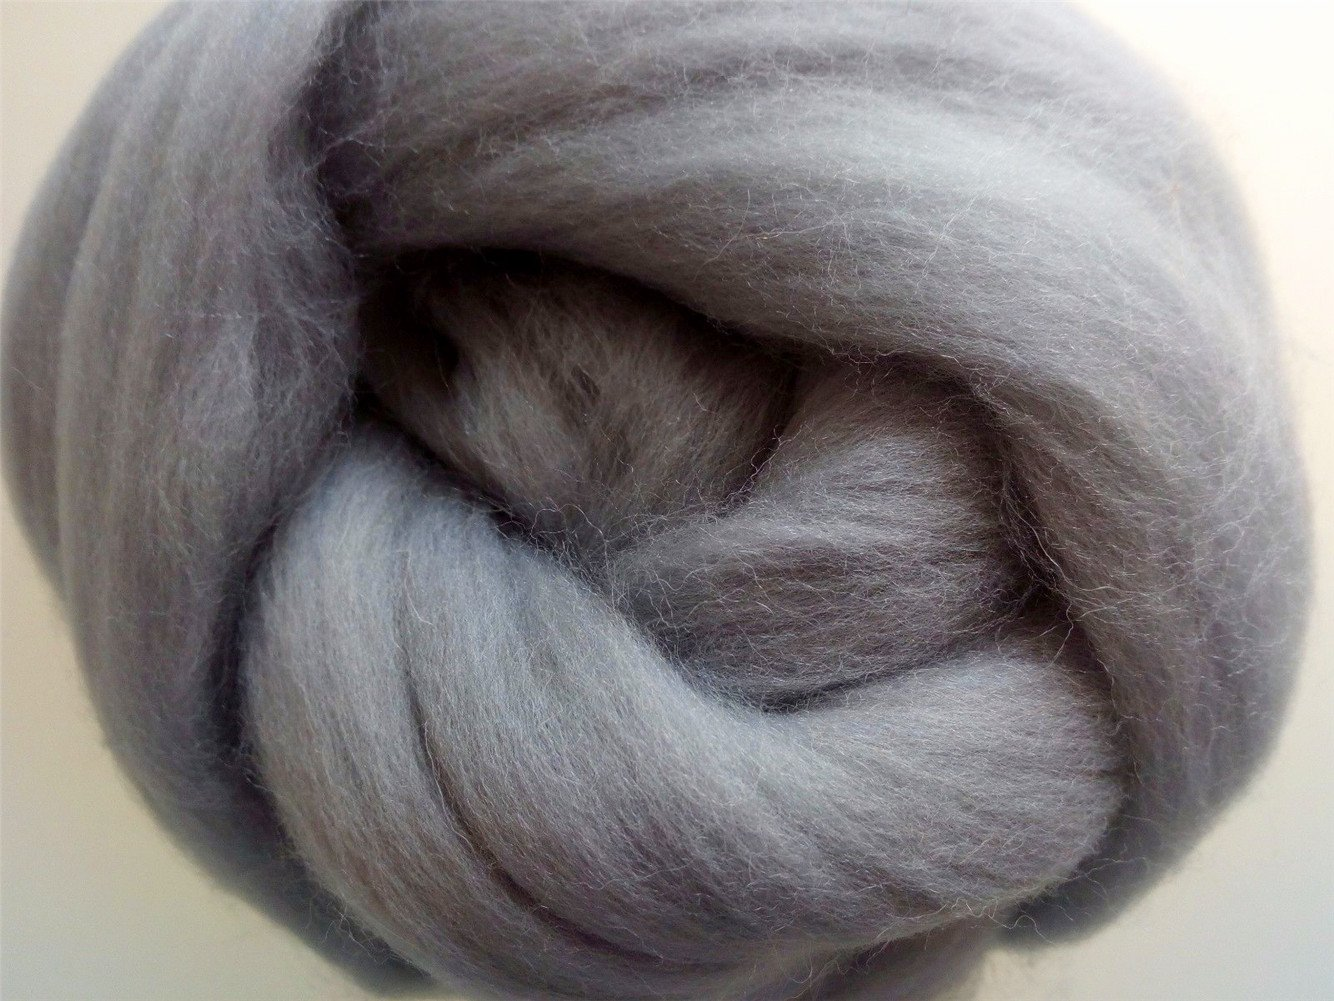 Dream Catcher Making 5oz Light Grey Knitting,Wall Hanging Making Light Grey of 150g Spinning 150g Grey Chunky Roving by HomeModa Yarns Wet Felting Wool Roving for Needle Felting